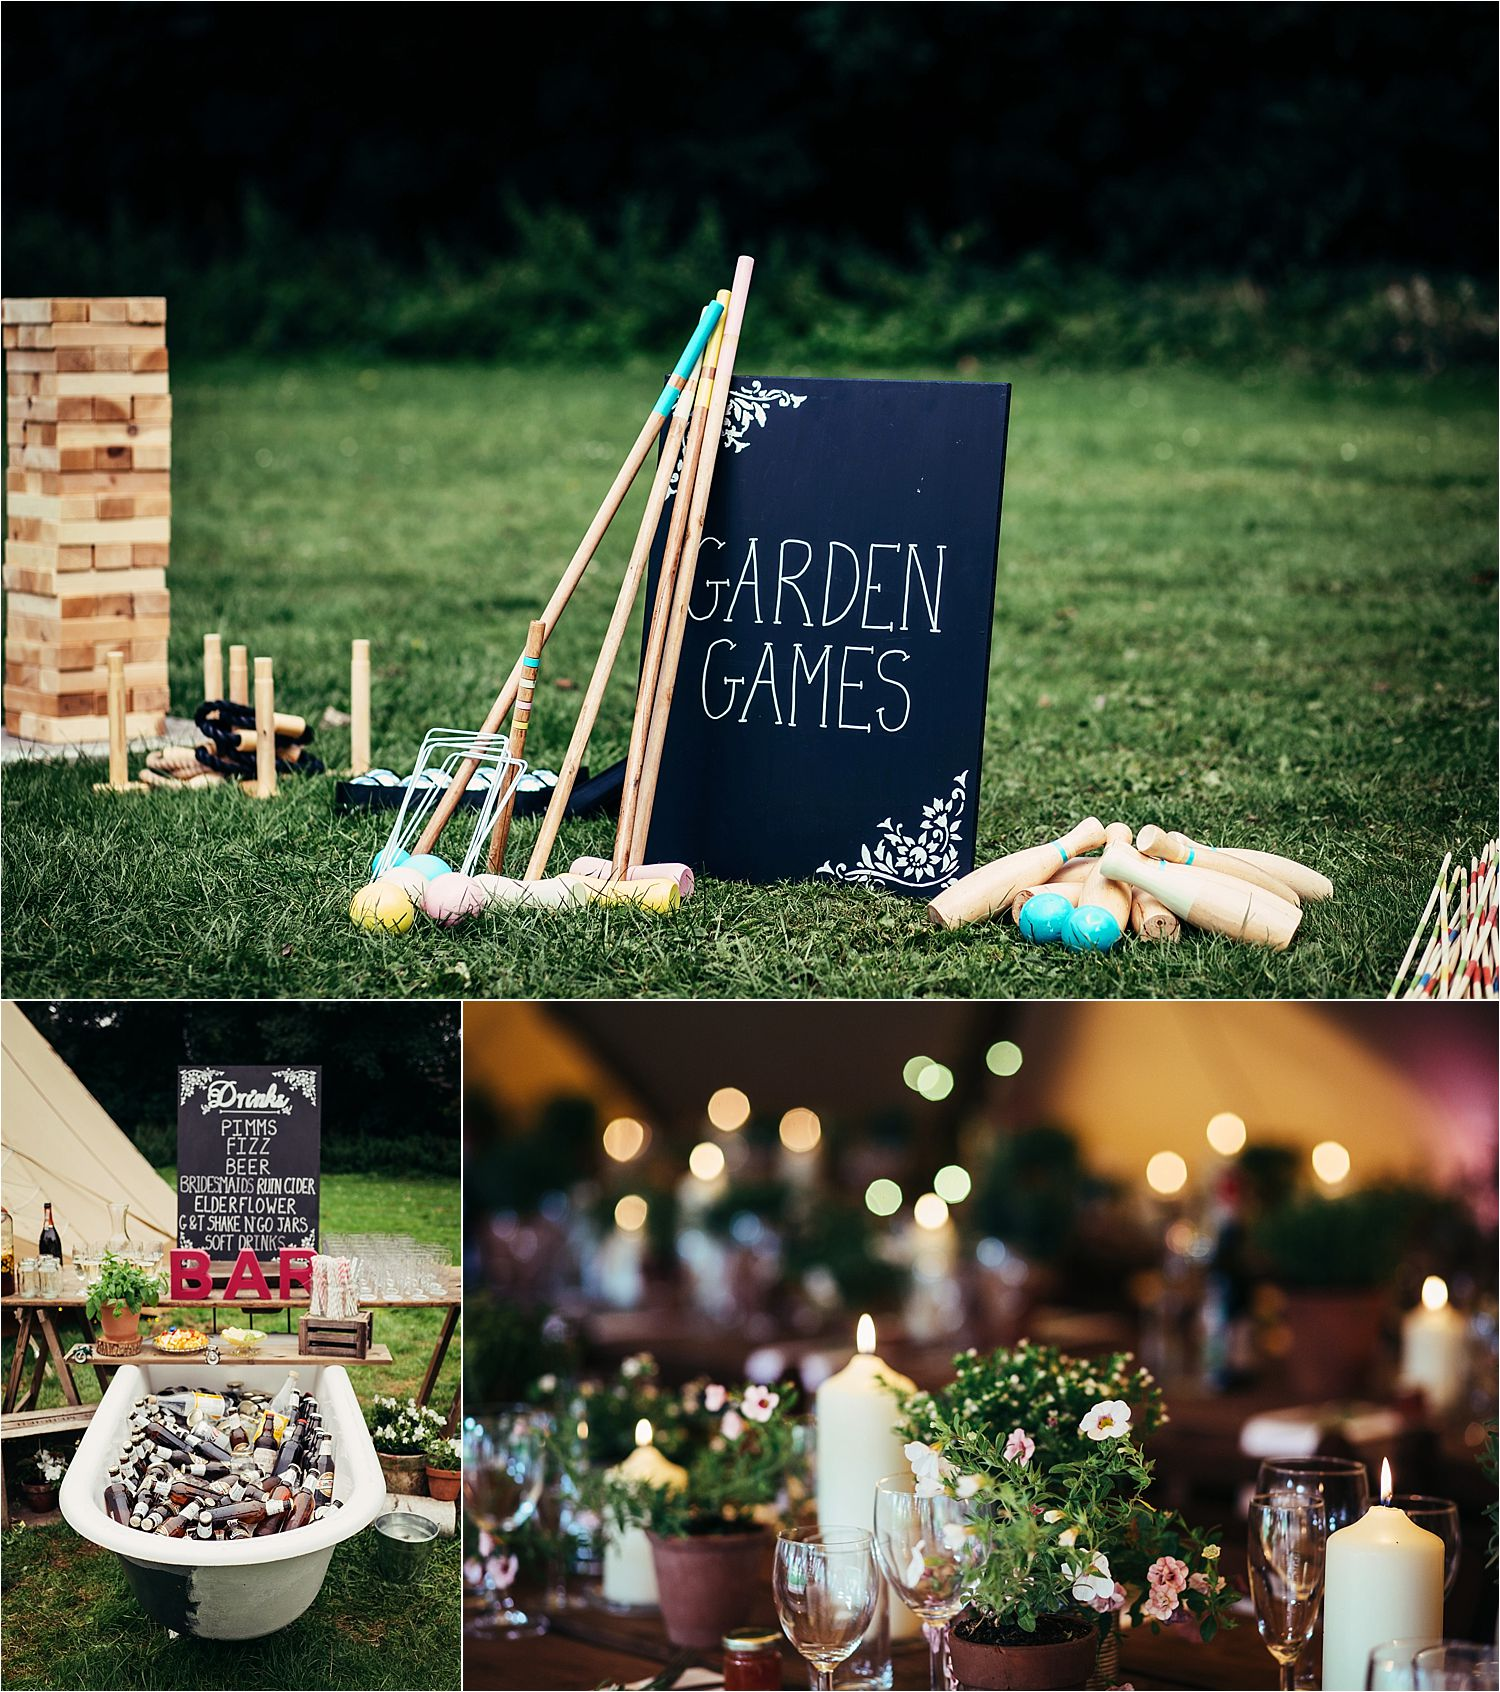 Garden games and deatils of bar and flowers at Bedfordhsire tipi wedding. Bar by Tipple and Toast